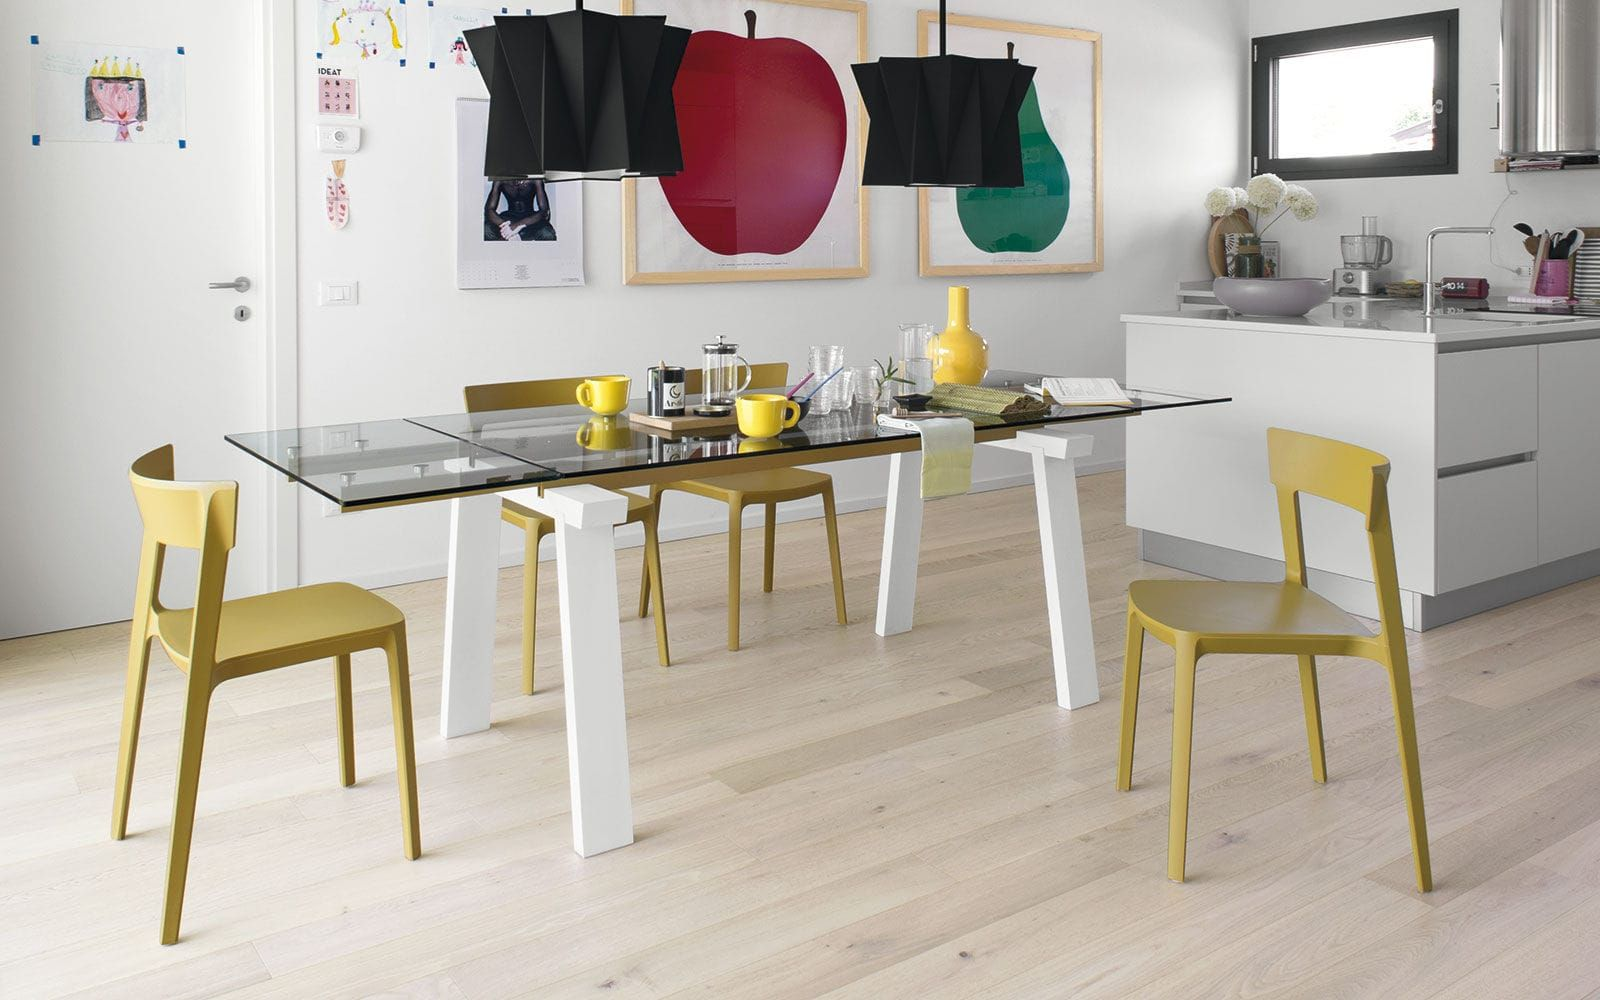 Fun And Playful Dining Table And Chairs From Calligaris. Buy This Calligaris  Table At Rosenthal